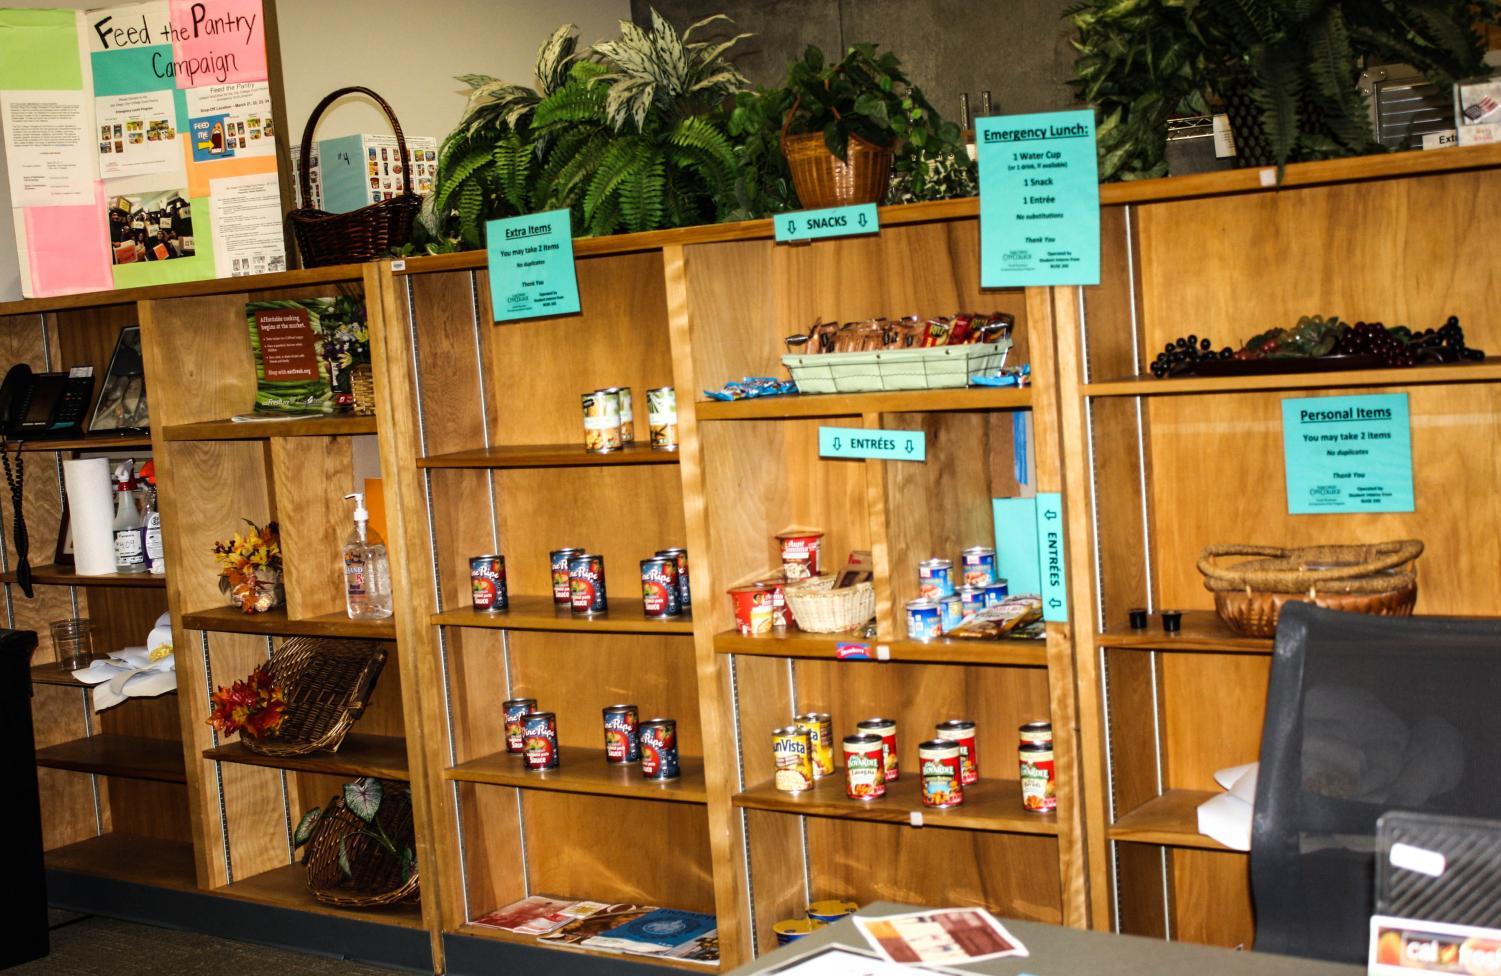 The City College food pantry is open to any student with a valid student I.D. Photo by Aurora Ruvalcaba